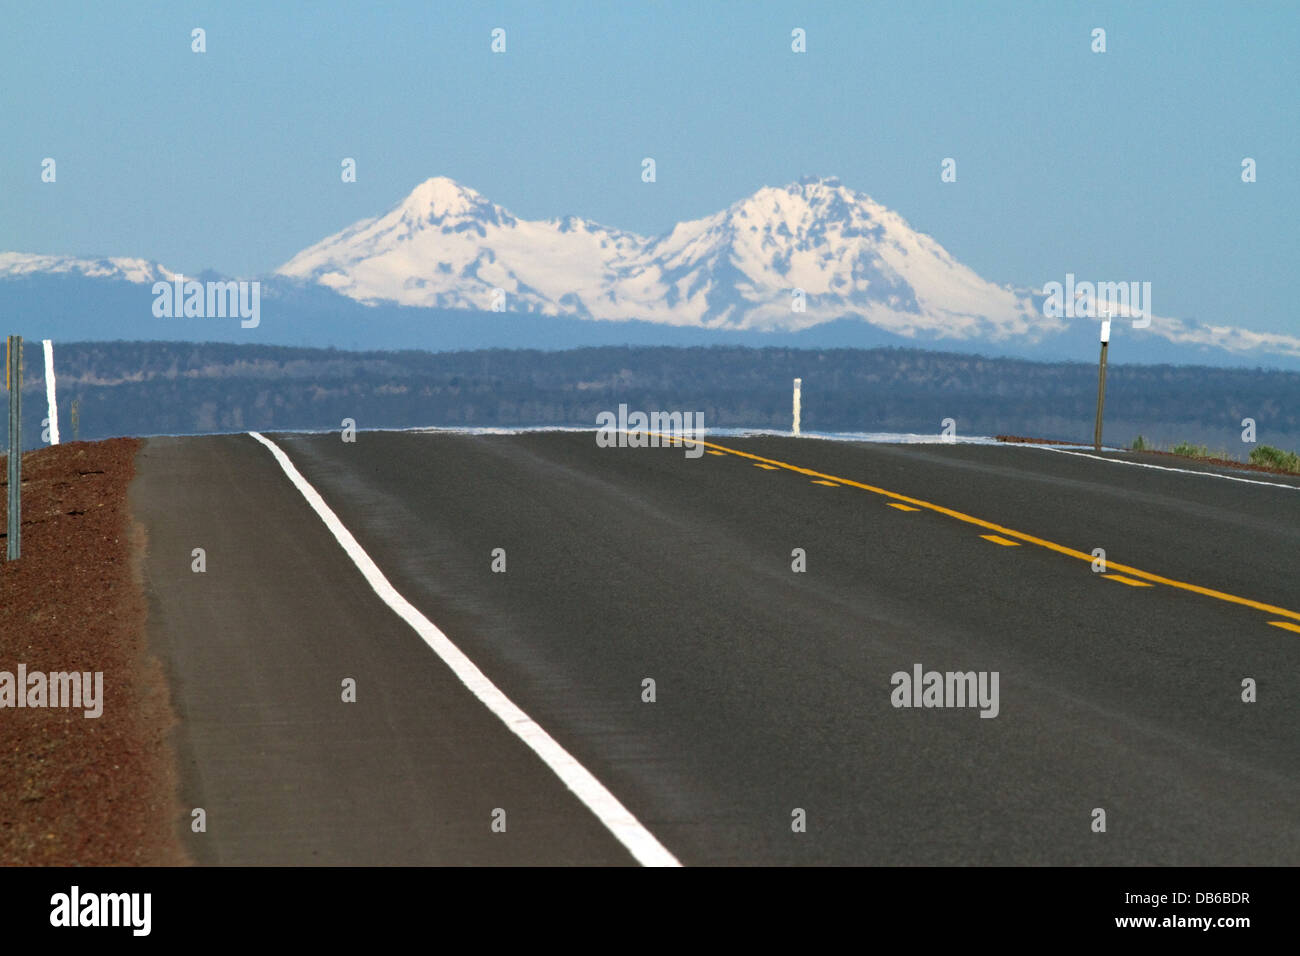 U.S. Route 20 east of Bend, Oregon, USA. - Stock Image